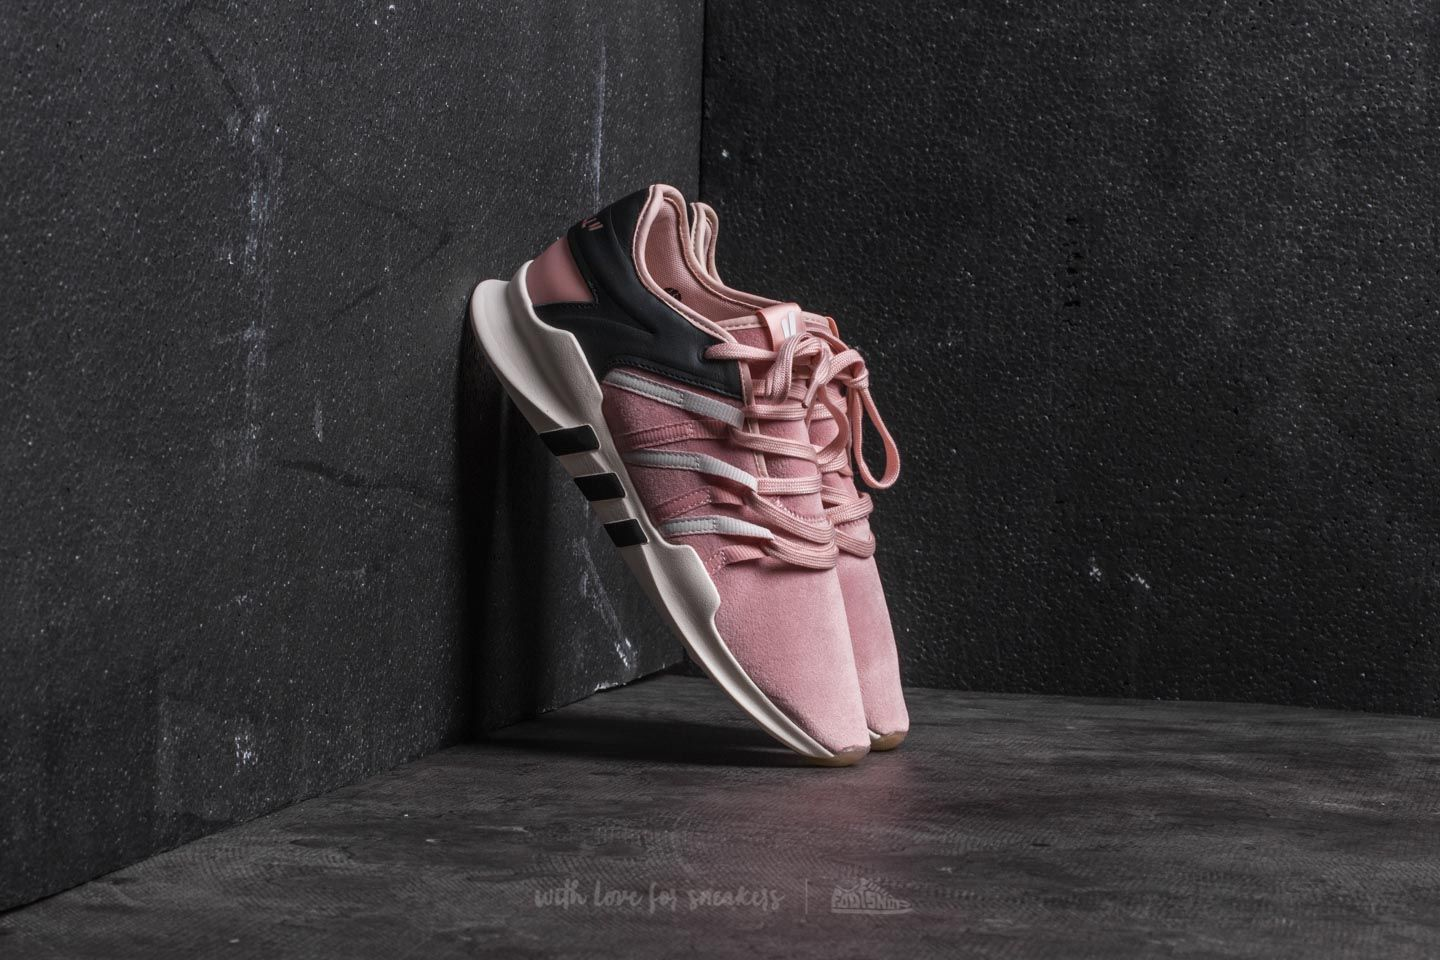 adidas Consortium x Overkill x Fruition Sneaker Exchange EQT Lacing ADV Vapour Pink/ Icey Pink/ Clear White